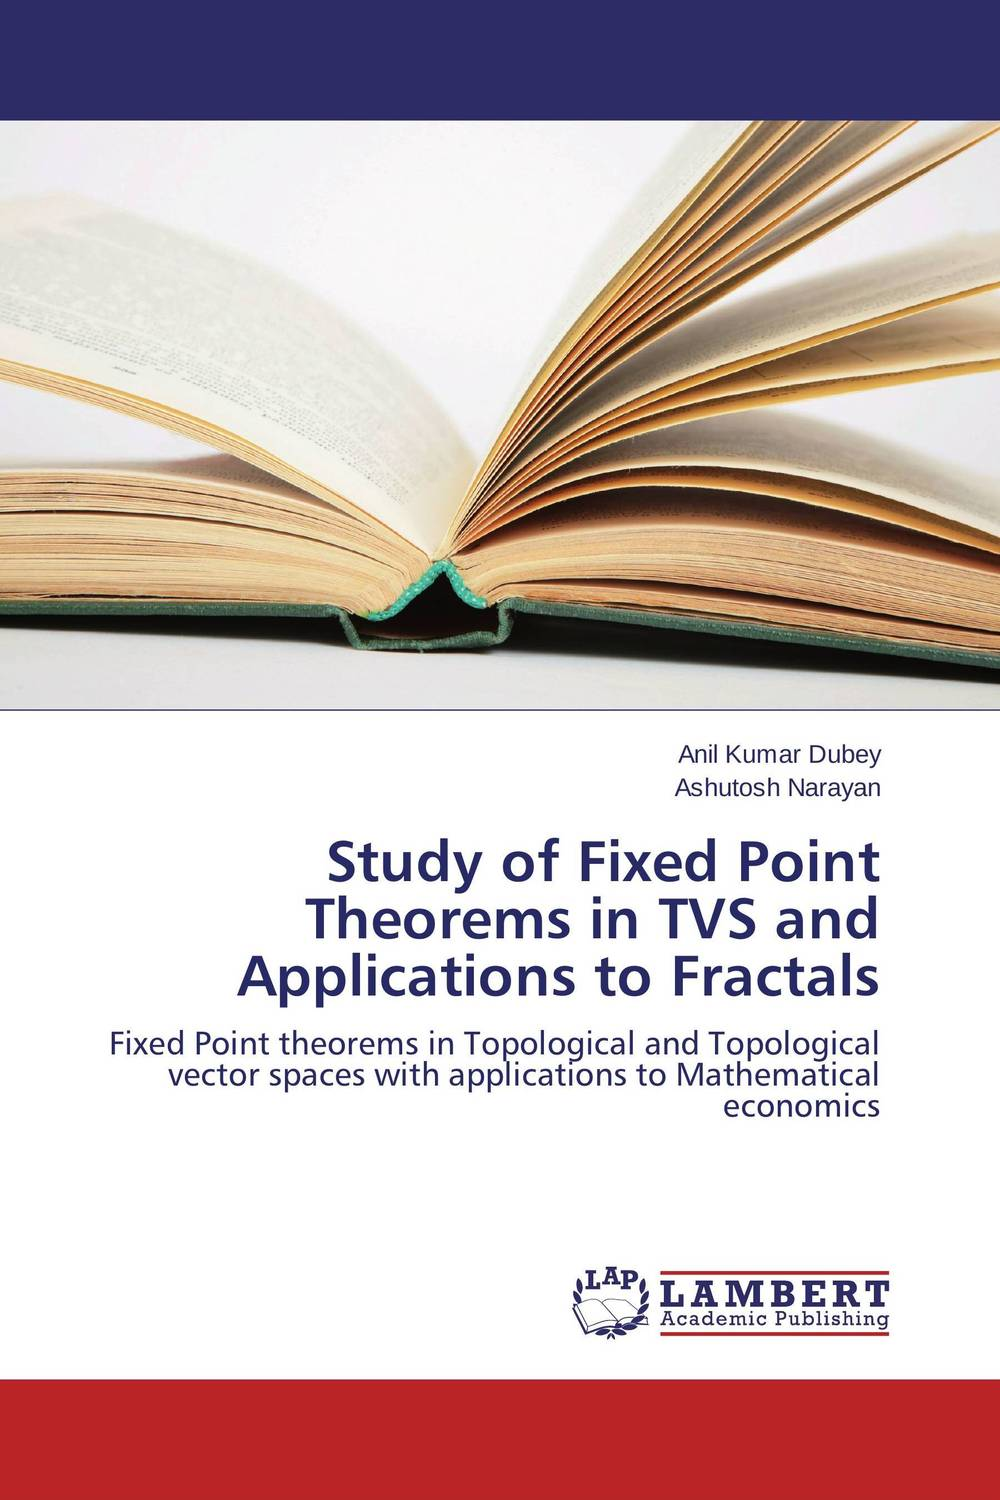 Study of Fixed Point Theorems in TVS and Applications to Fractals